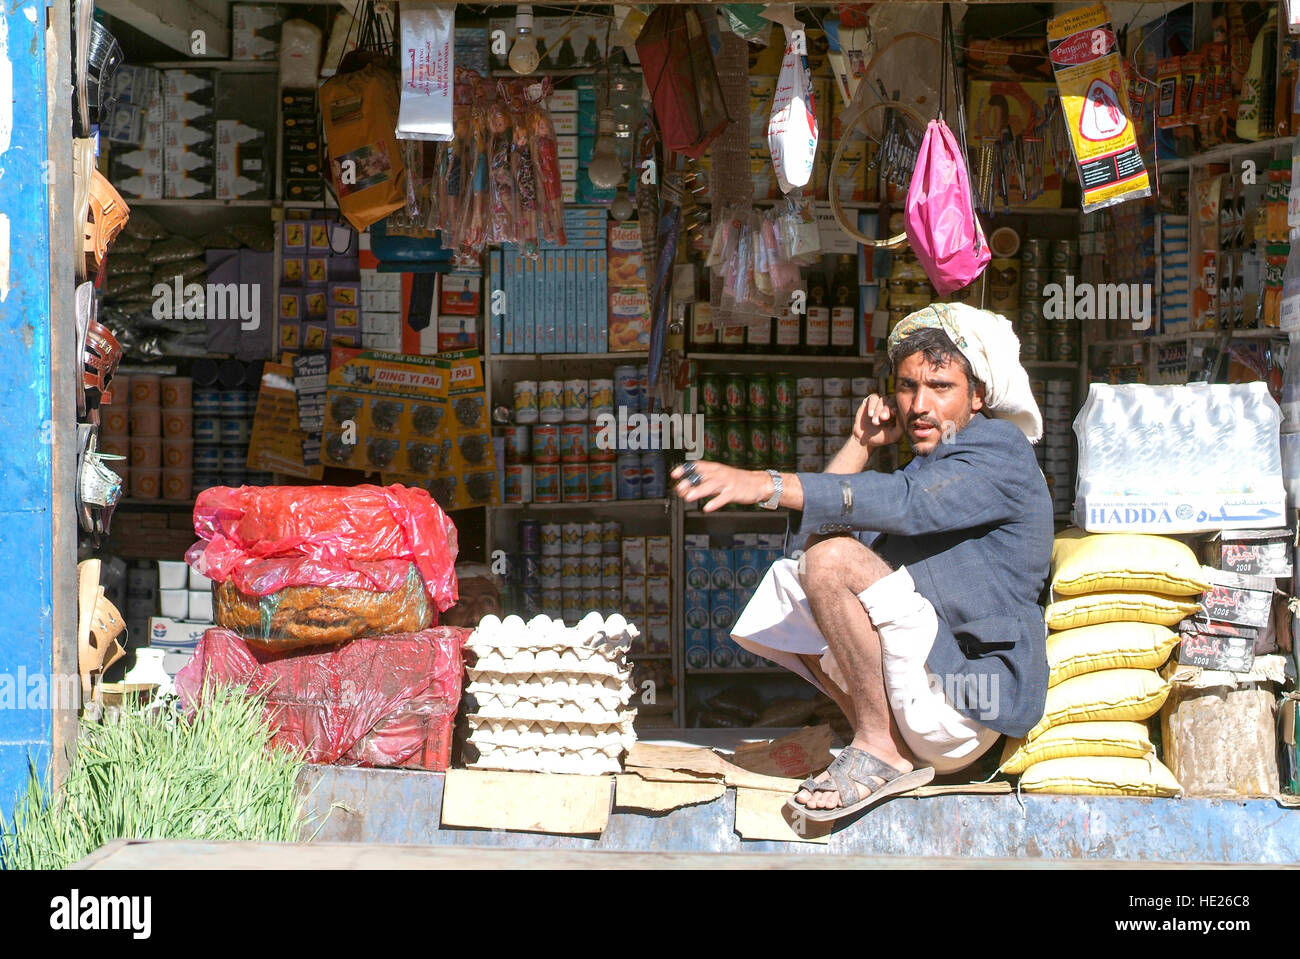 Habbabah, Yemen - 7 January 2008: man selling food on his small shop at Habbabah on Yemen - Stock Image